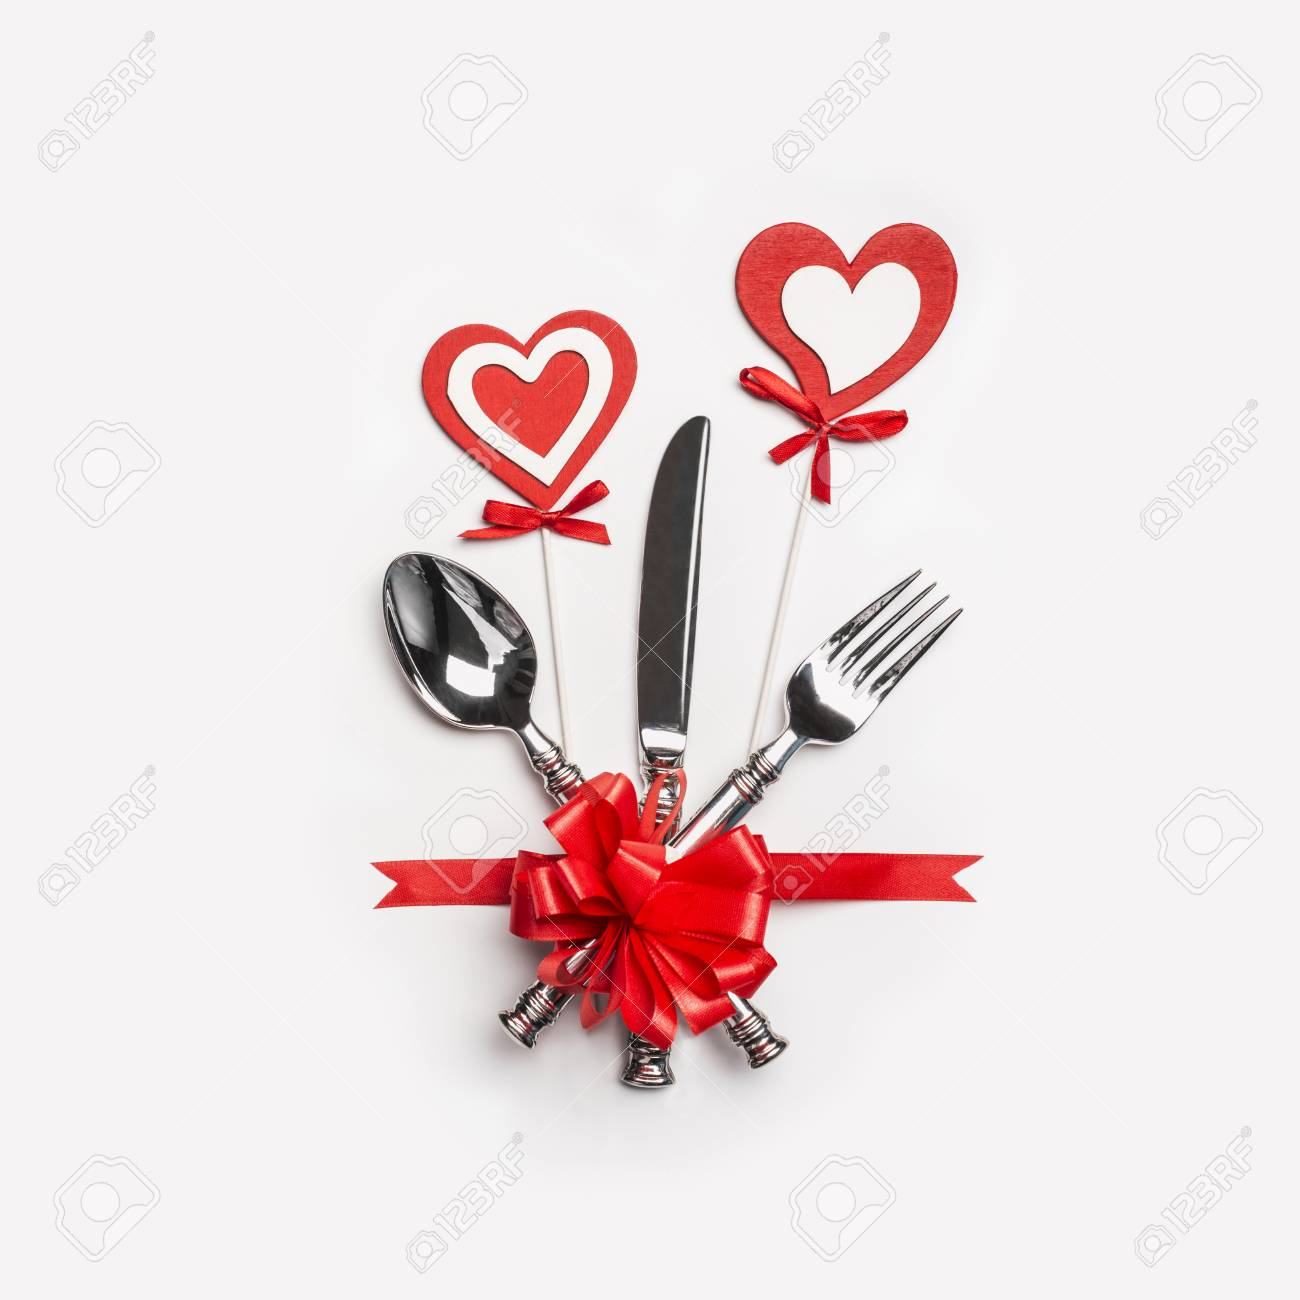 Stock Photo - Valentines day dinner table setting with cutlery red ribbon and hearts on white background top view & Valentines Day Dinner Table Setting With Cutlery Red Ribbon.. Stock ...